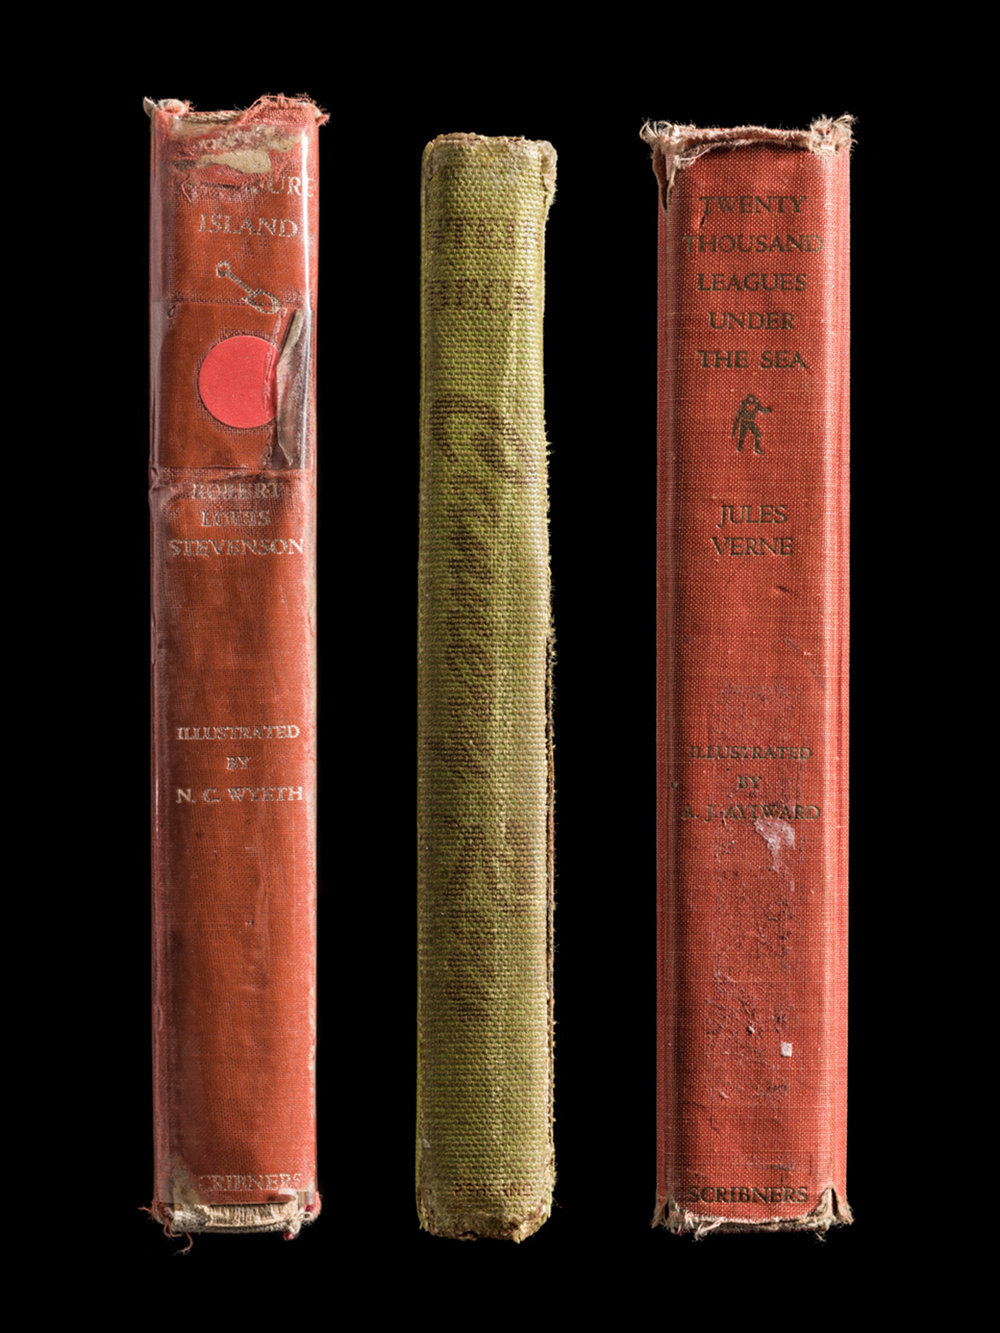 Treasure Island, Cannery Row, Twenty Thousand Leagues Under the Sea, Spines